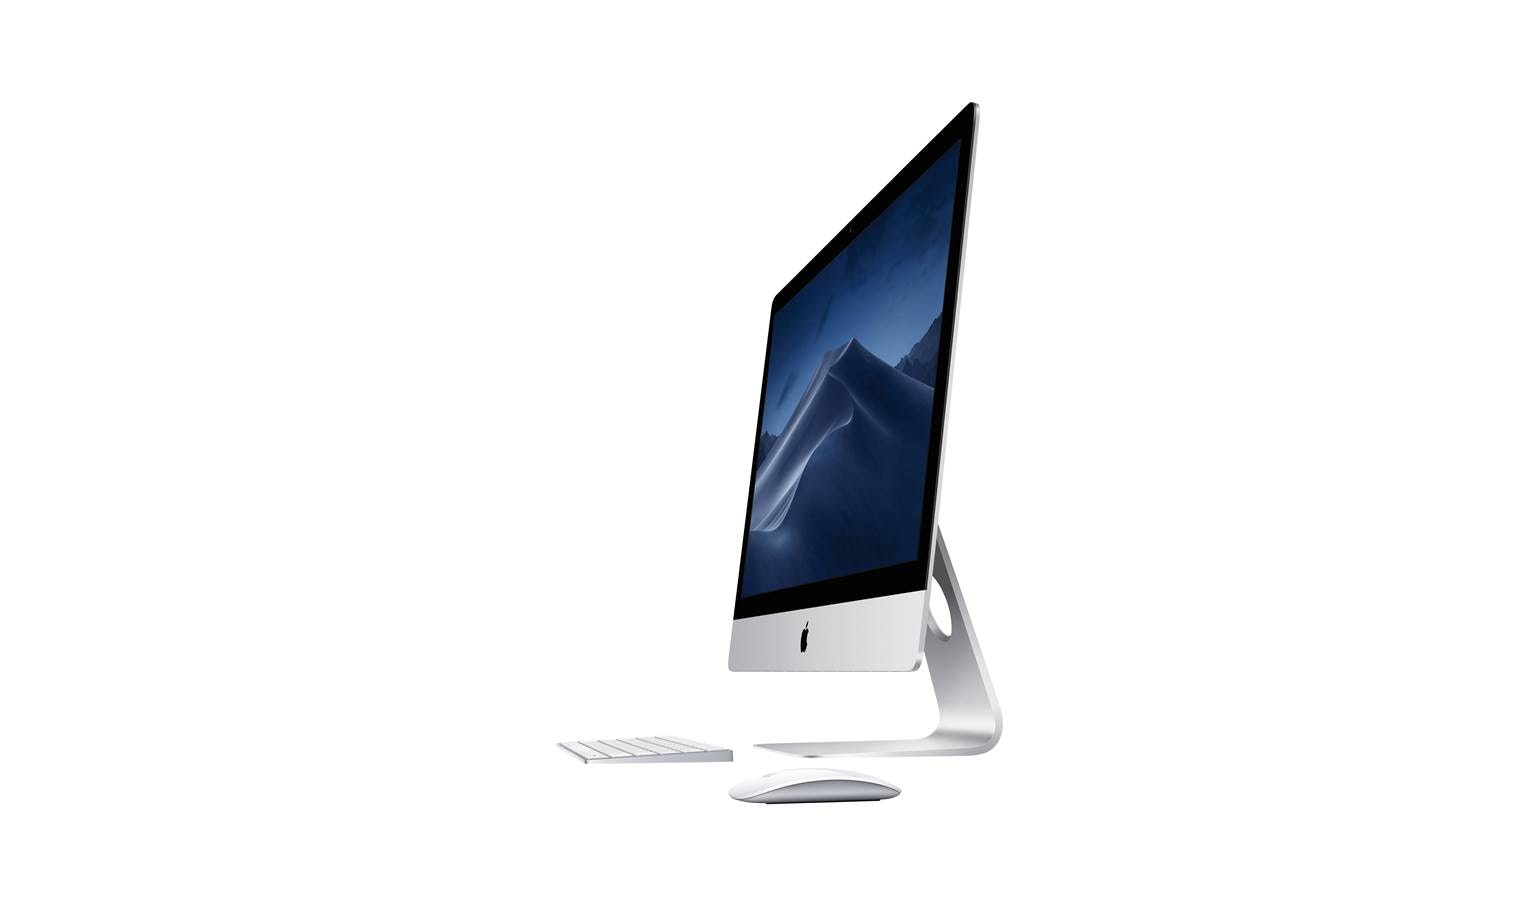 "Apple iMac 27.0"" 3.1 GHz with Retina 4K Display (Overview)"